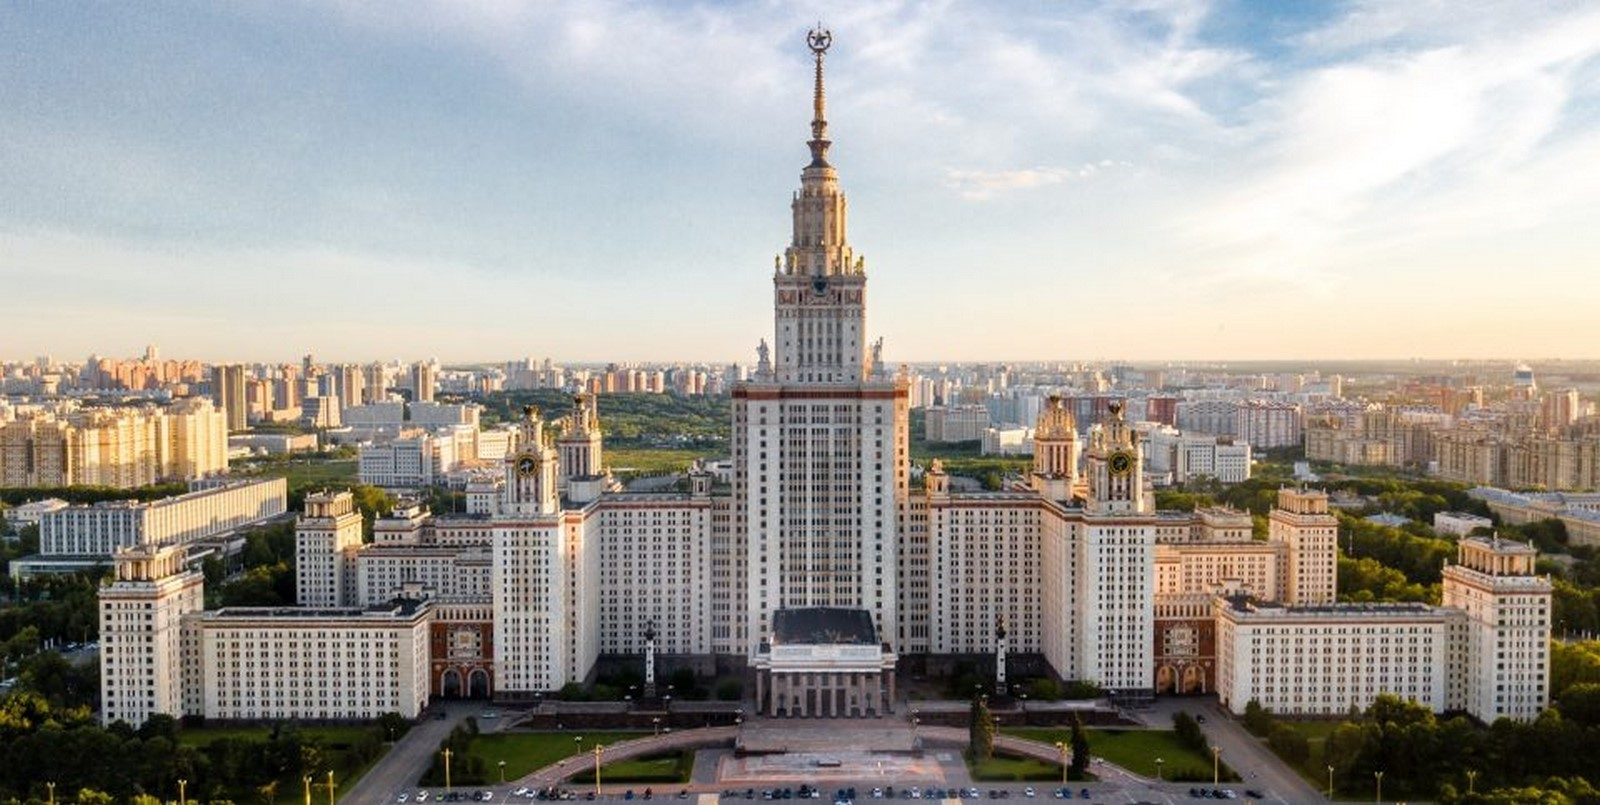 10 Reasons why Architects should visit Russia - Sheet20